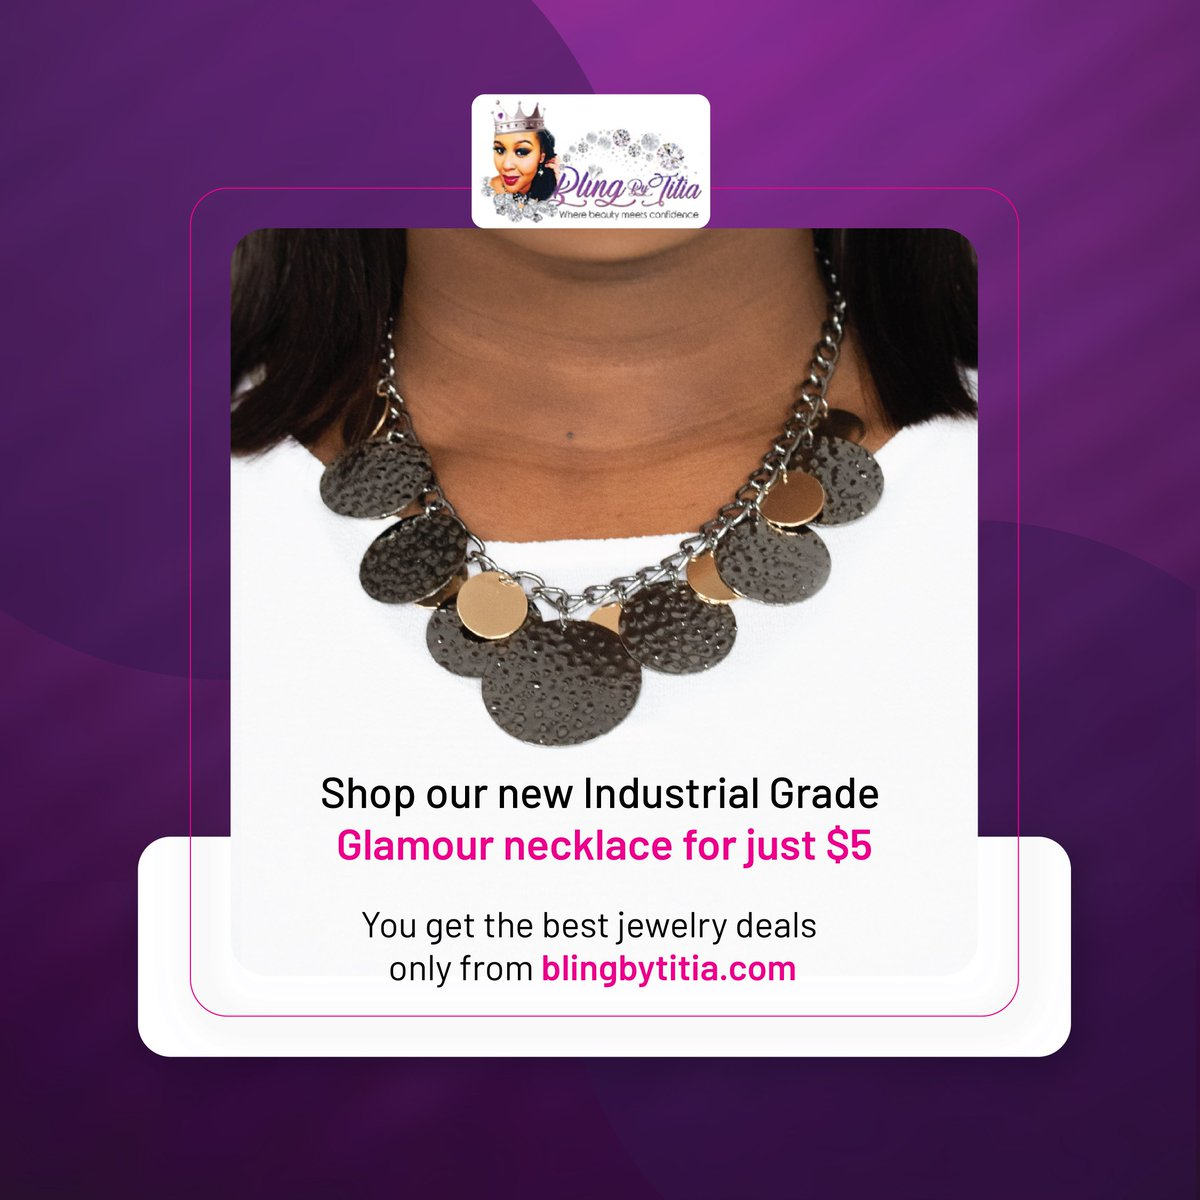 Enhance your appearance and charm with our new Industrial Grade Glamour necklace for just $5 on   All our jewelry collections are lead and nickel-free. You get the best jewelry deals only from Bling by Titia.  #BlingByTitia #fashion #jewelry